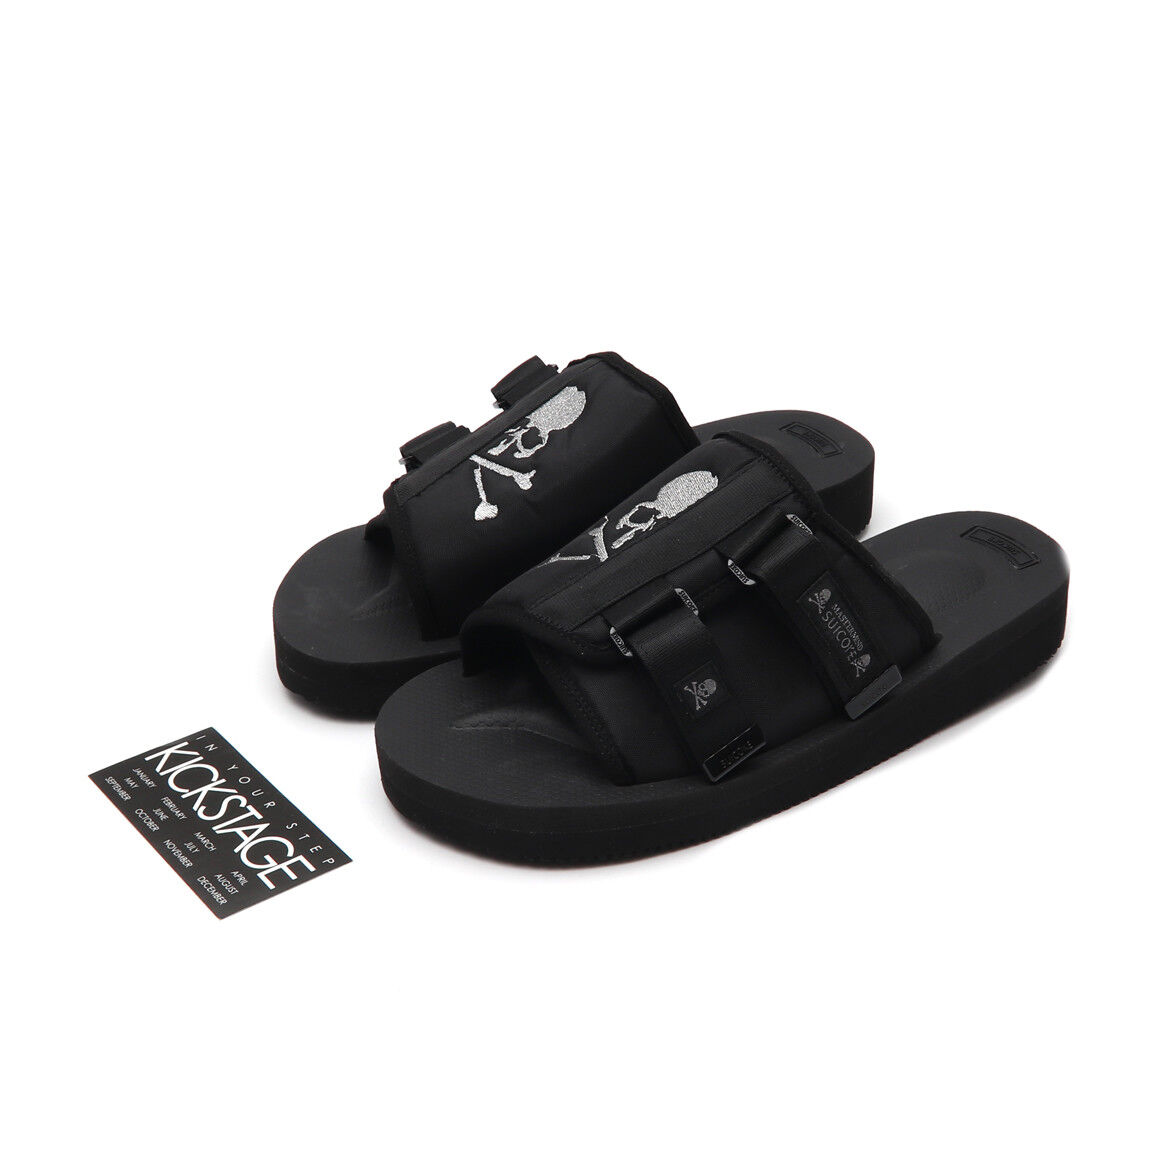 b8ff525386 Mastermind JAPAN x SUICOKE KAW-VMM-JAPAN / OG-081VMM-JAPAN Black MMJ Sandals